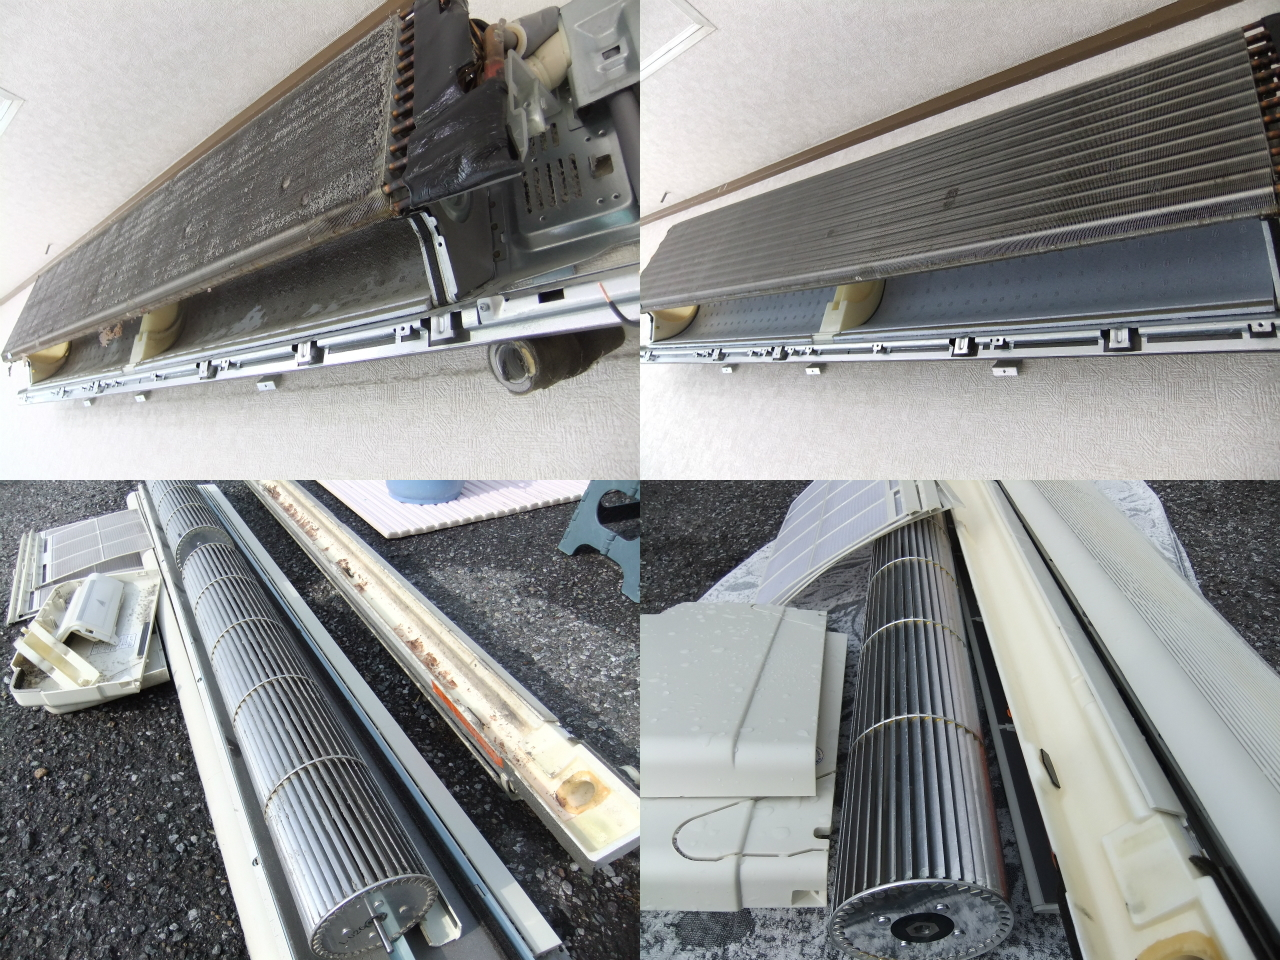 http://ajras.net/images/120123-aircon2.jpg